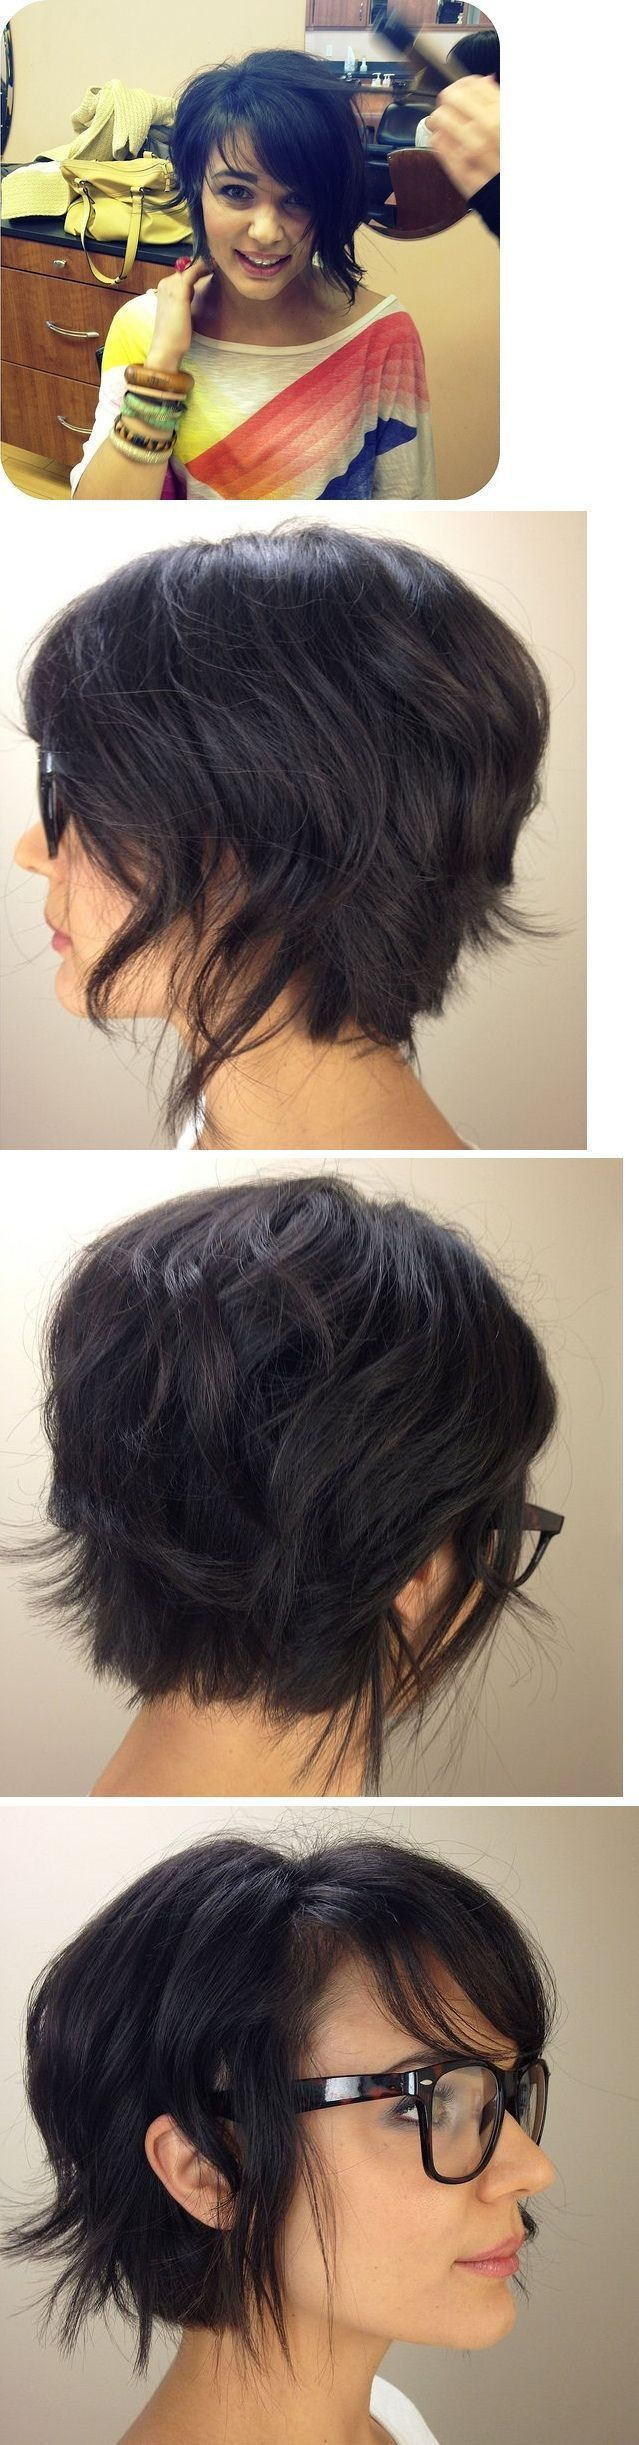 Growing Out A Pixie Cut 20